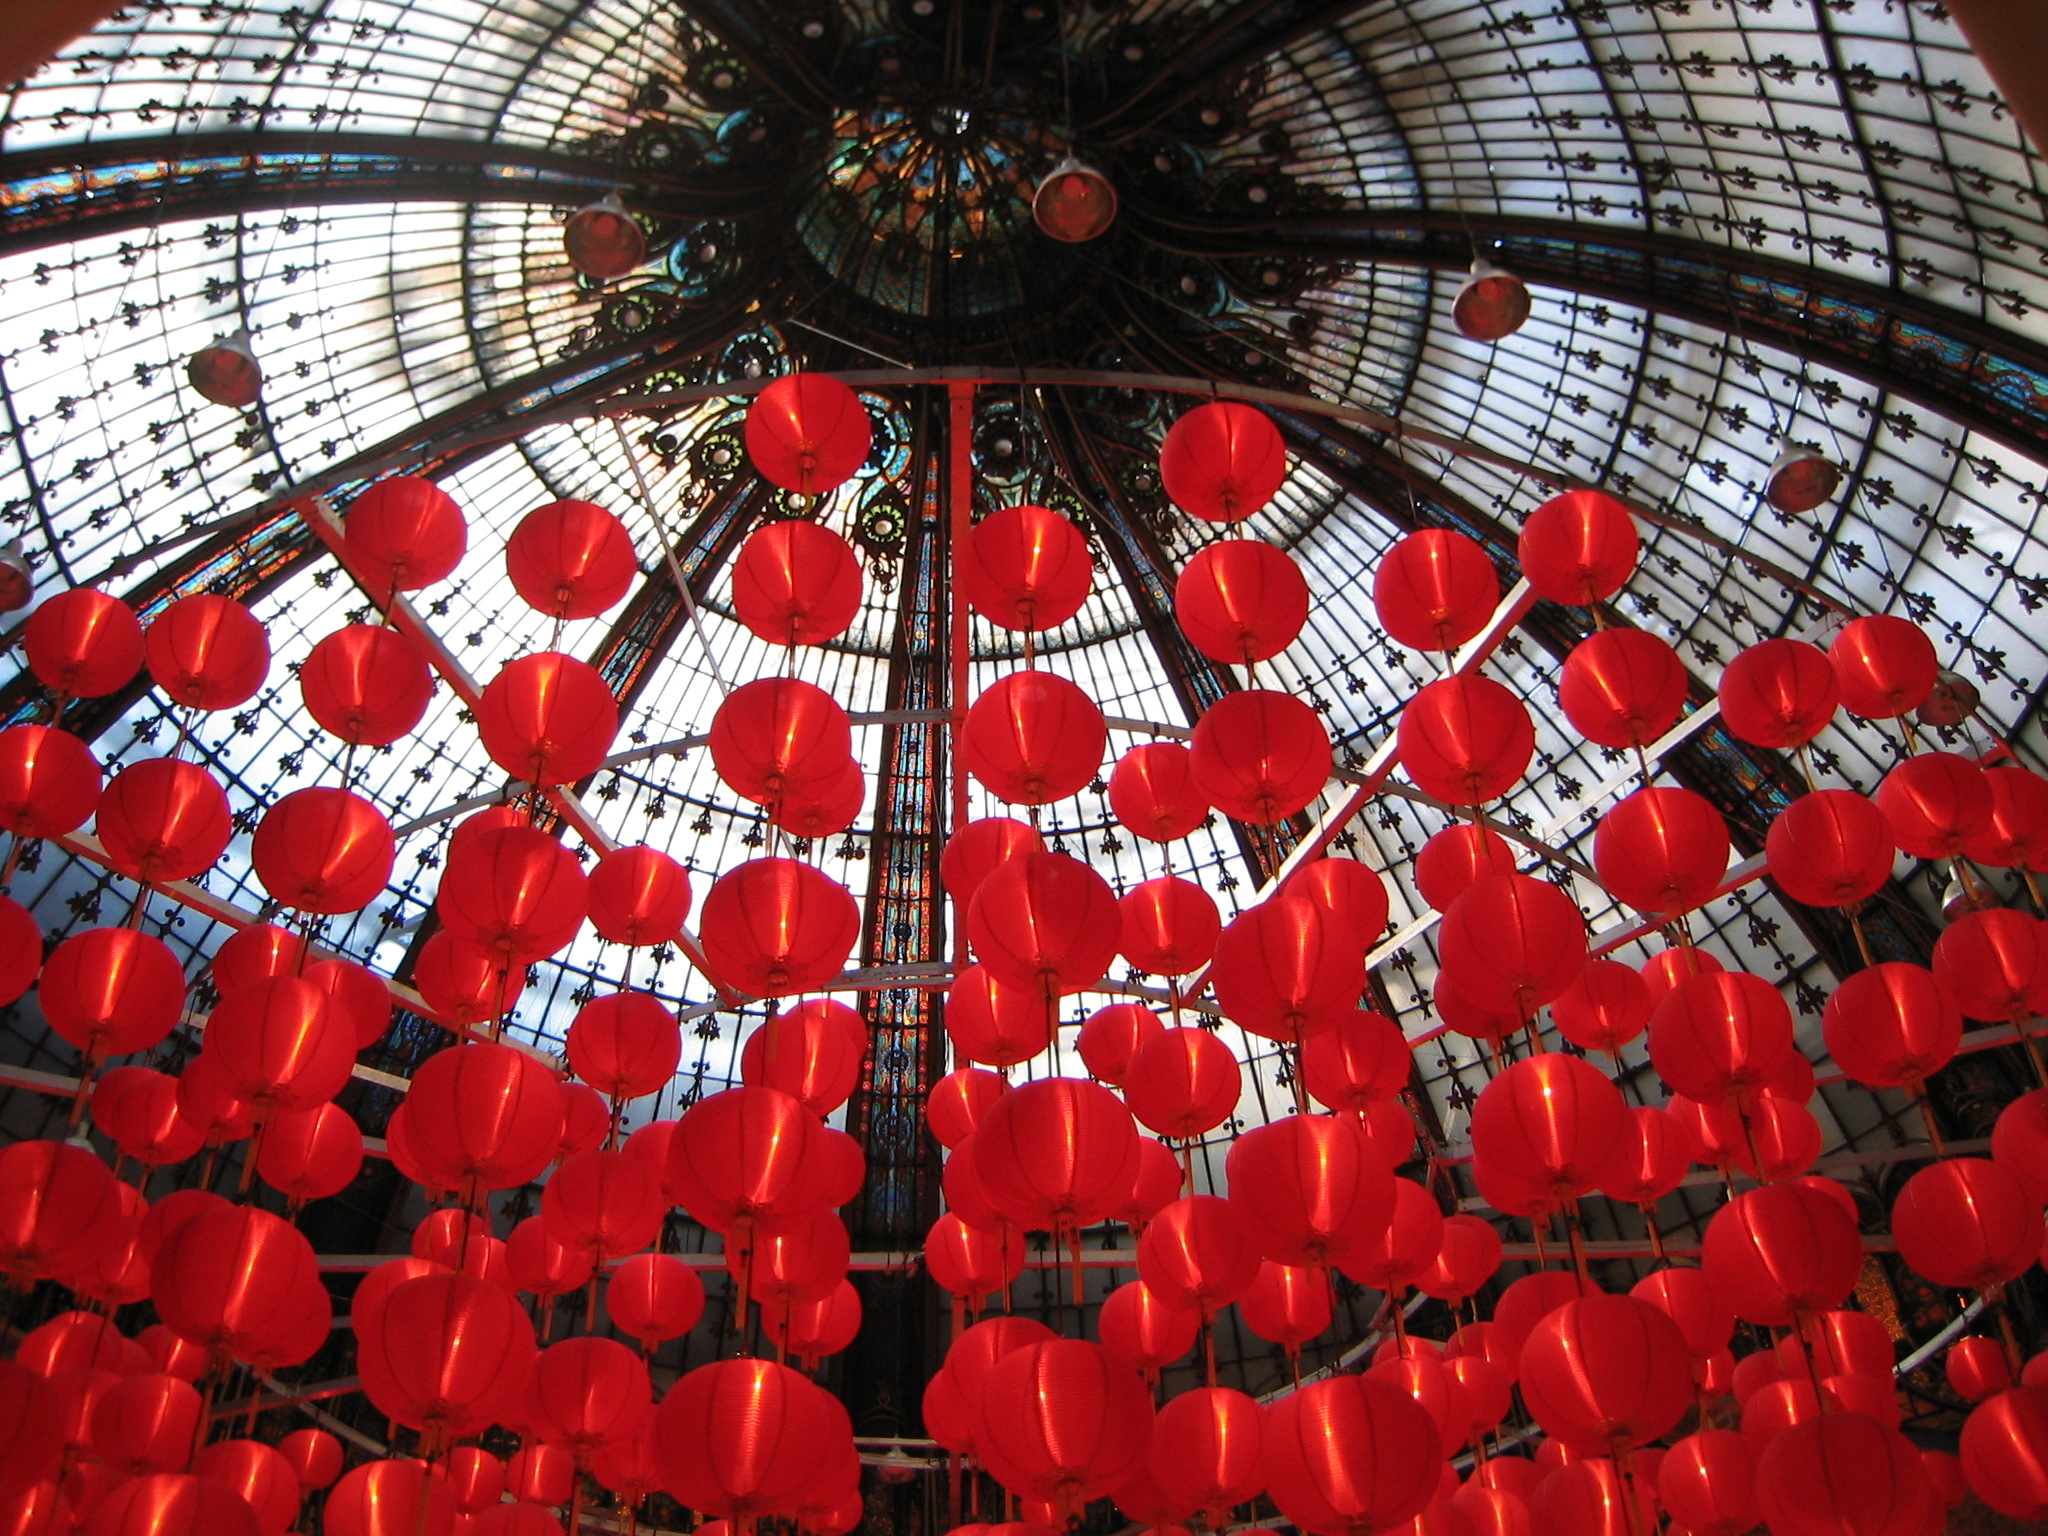 galleries lafayette red lanterns in Paris France @Rebeccaplotnick